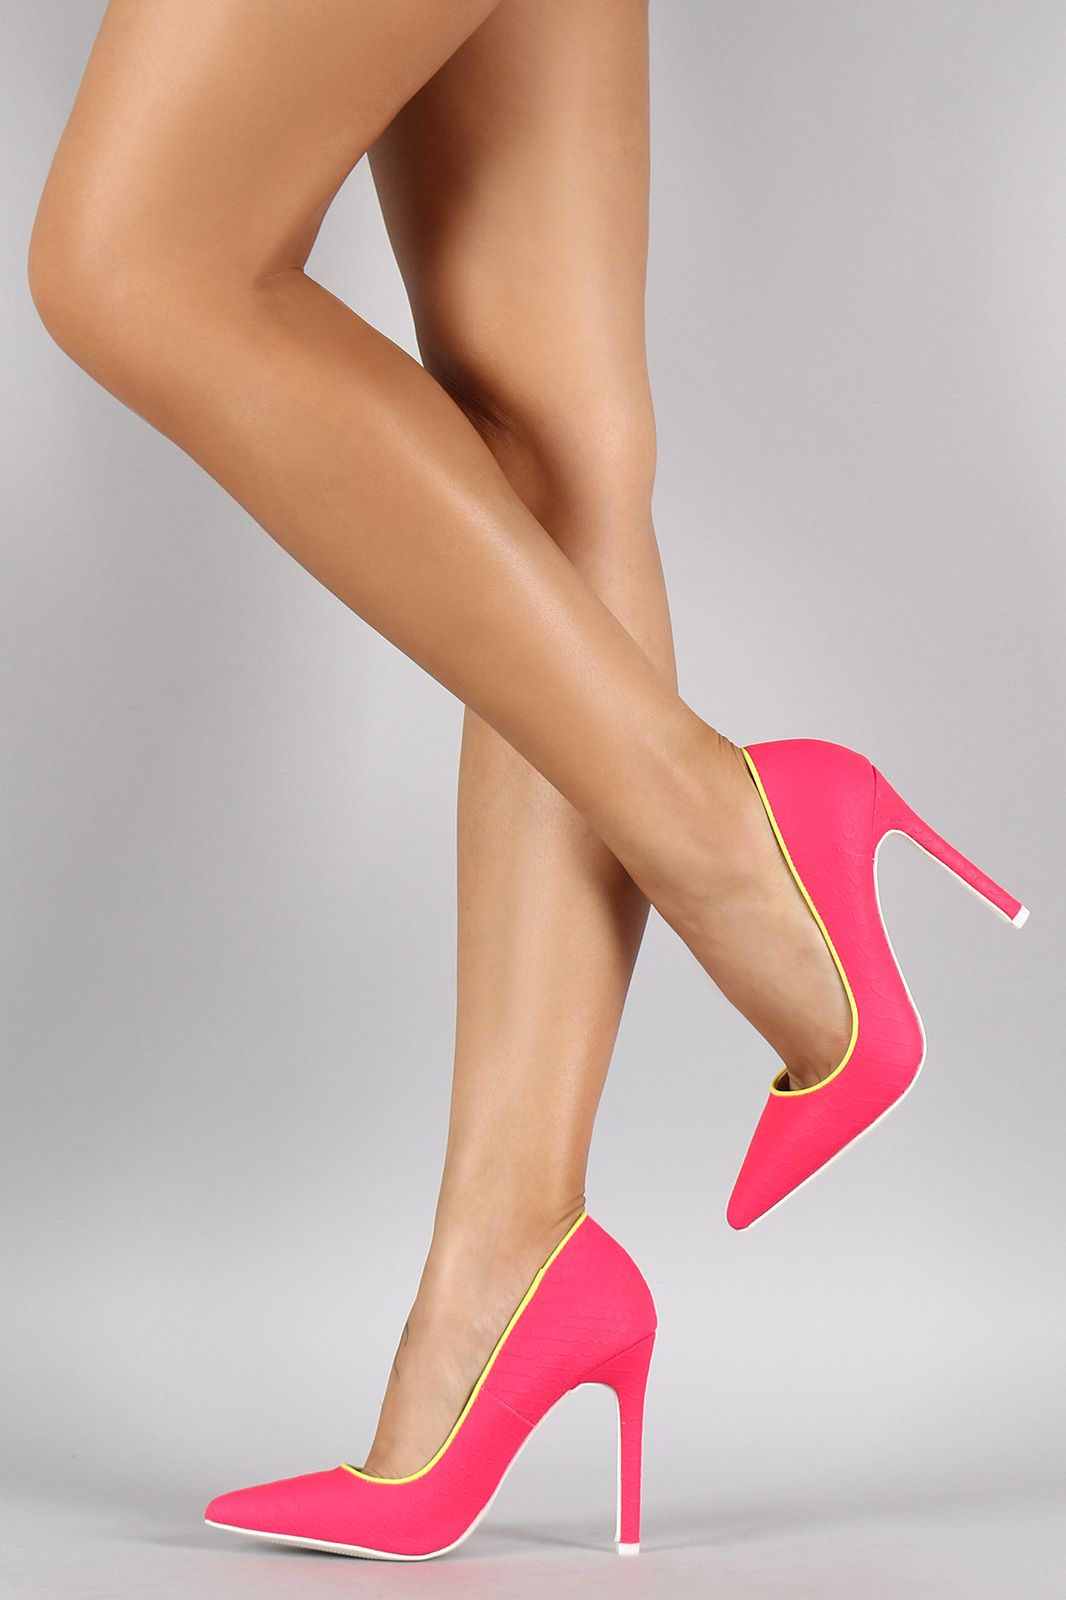 cc85b5f36 Liliana Neon Snake Pointy Toe Pump | Made for walking in 2019 ...